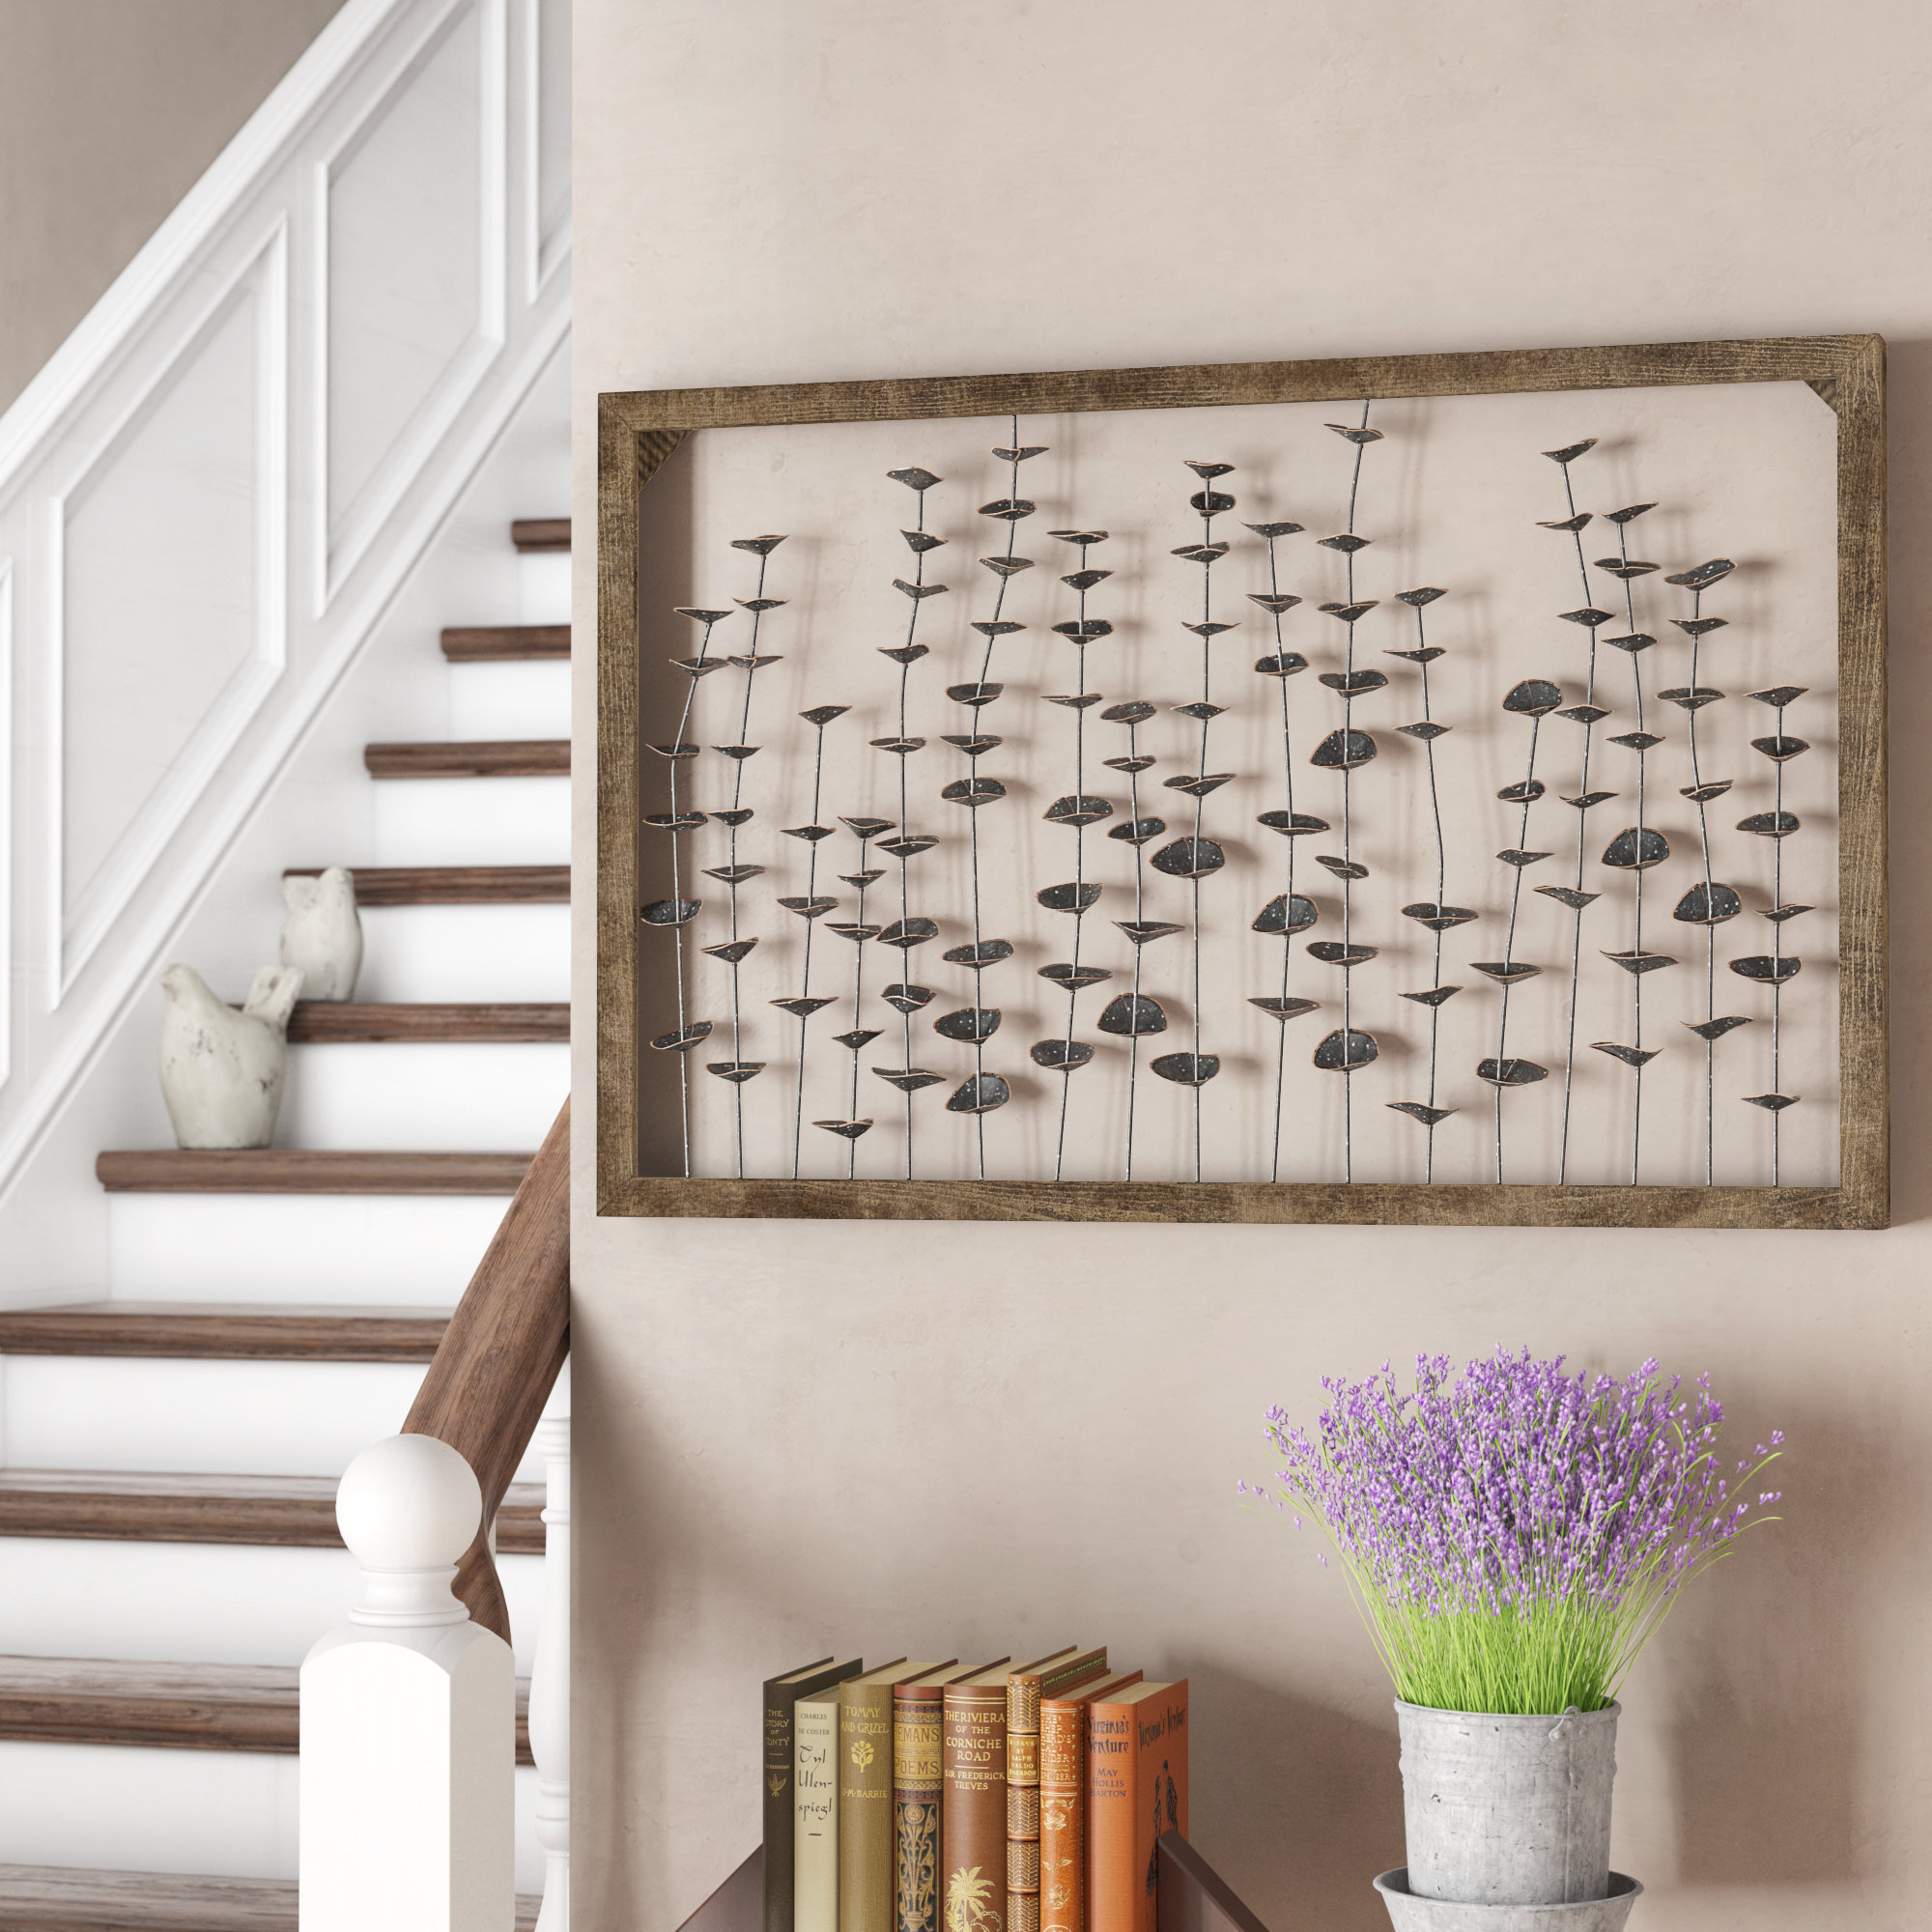 August Grove Framed Metal Flower Leaves Sculpture Wall Art Farmhouse Intended For Fashionable Leaves Metal Sculpture Wall Decor (View 3 of 20)